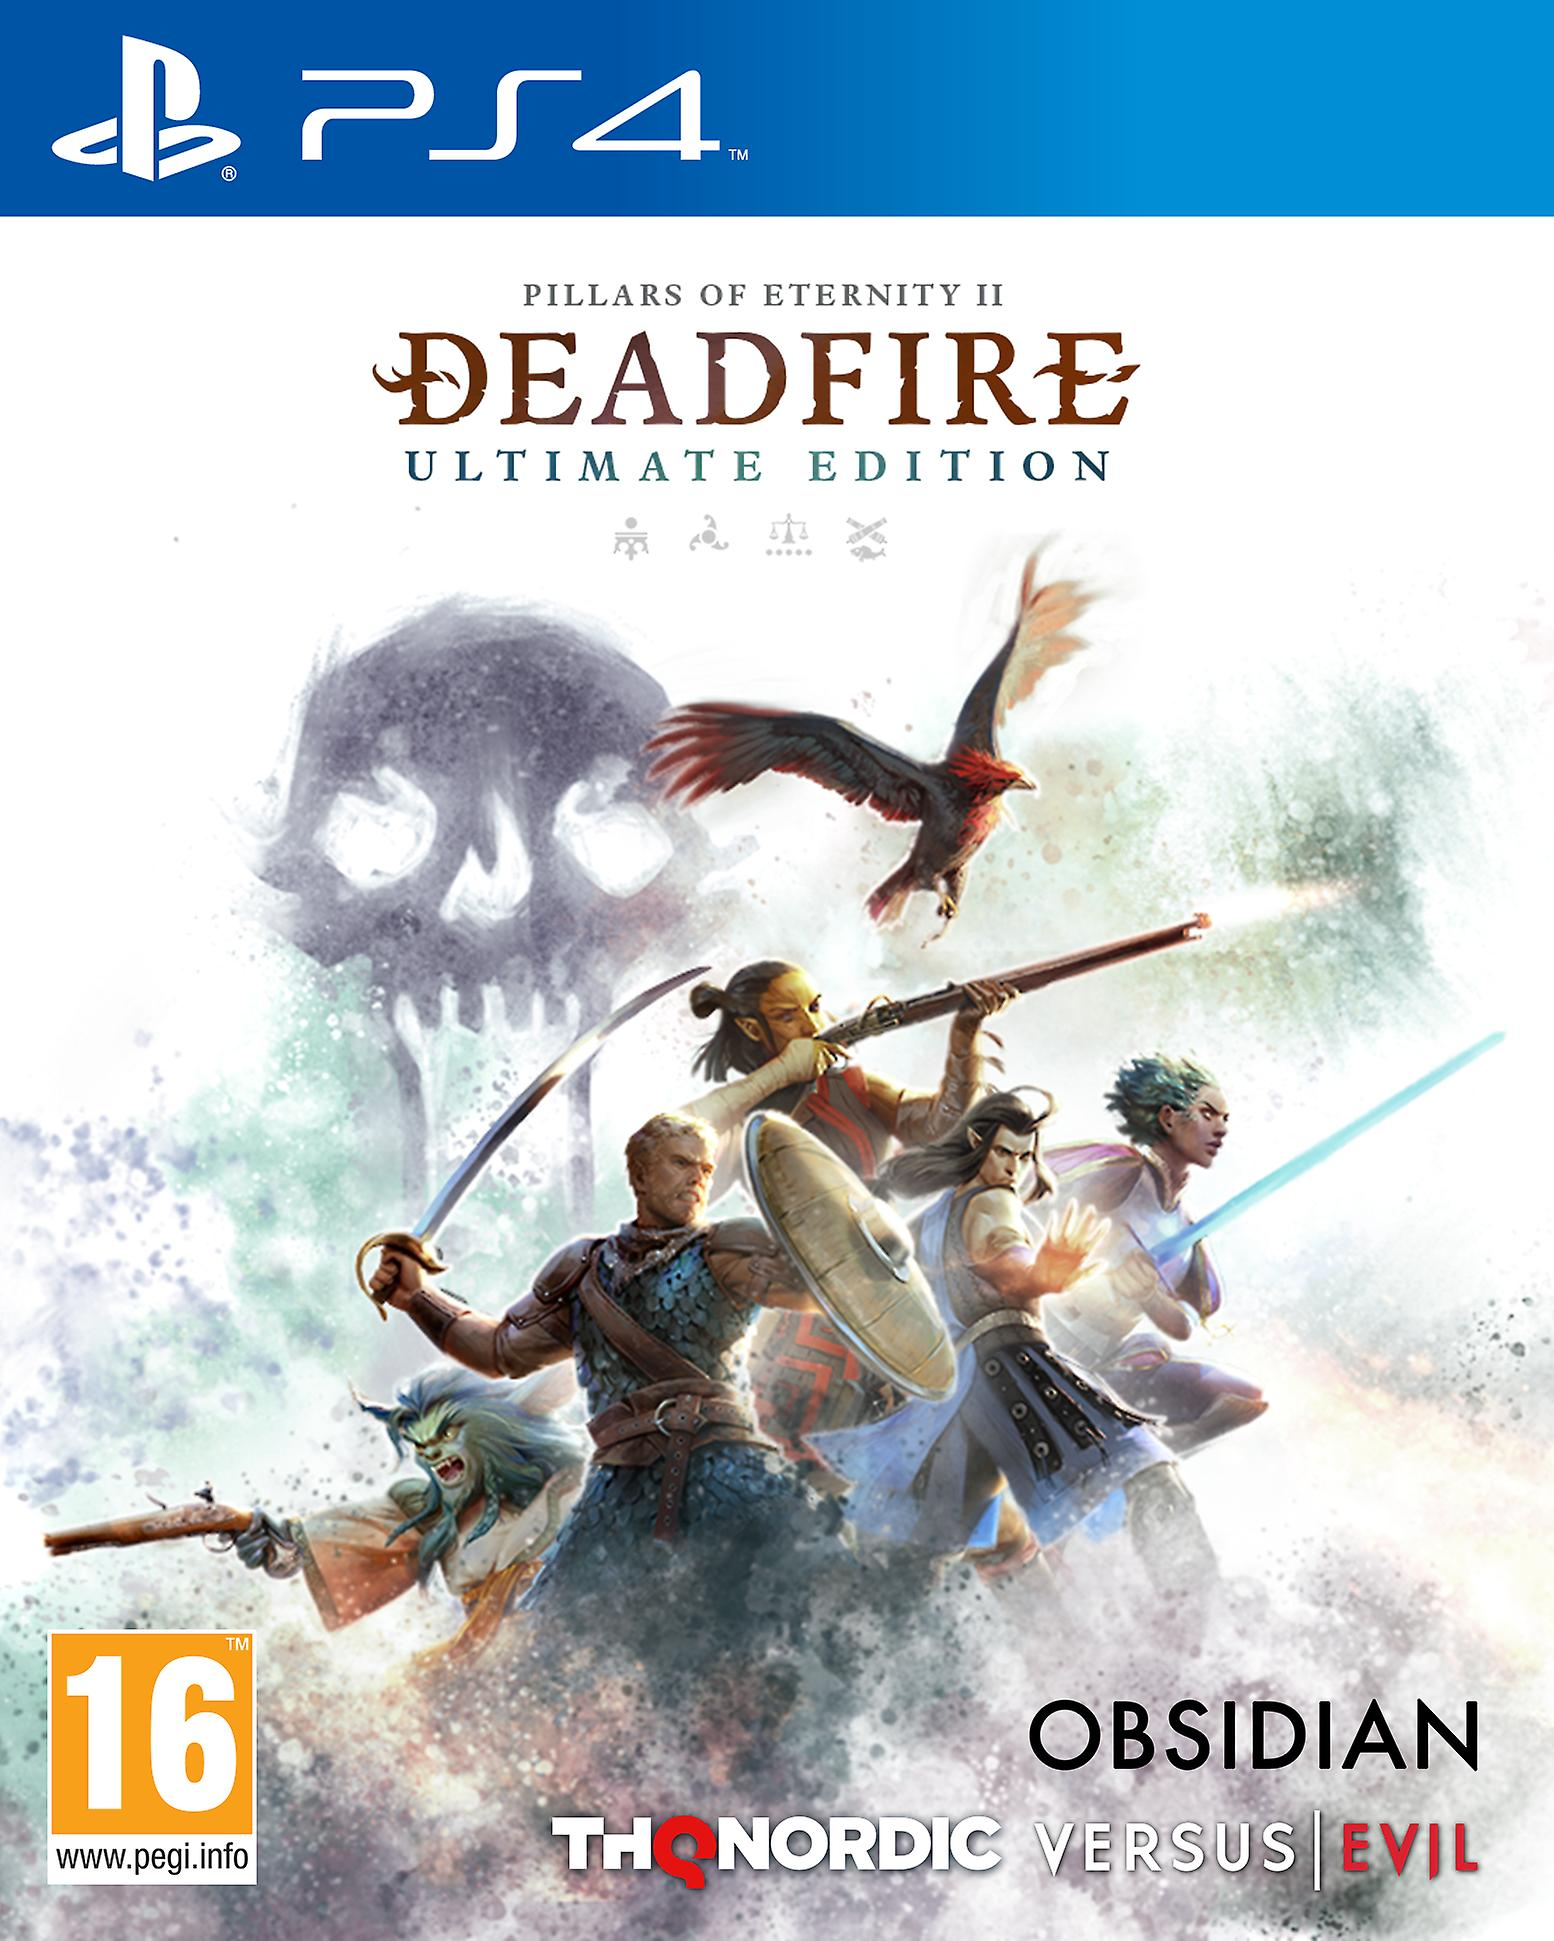 Pillars of Eternity II: Deadfire - Ultimate Edition [PS4] 5.05 / 6.72 / 7.02 / 7.55 [EUR] (2020) [Русский] (v1.05)